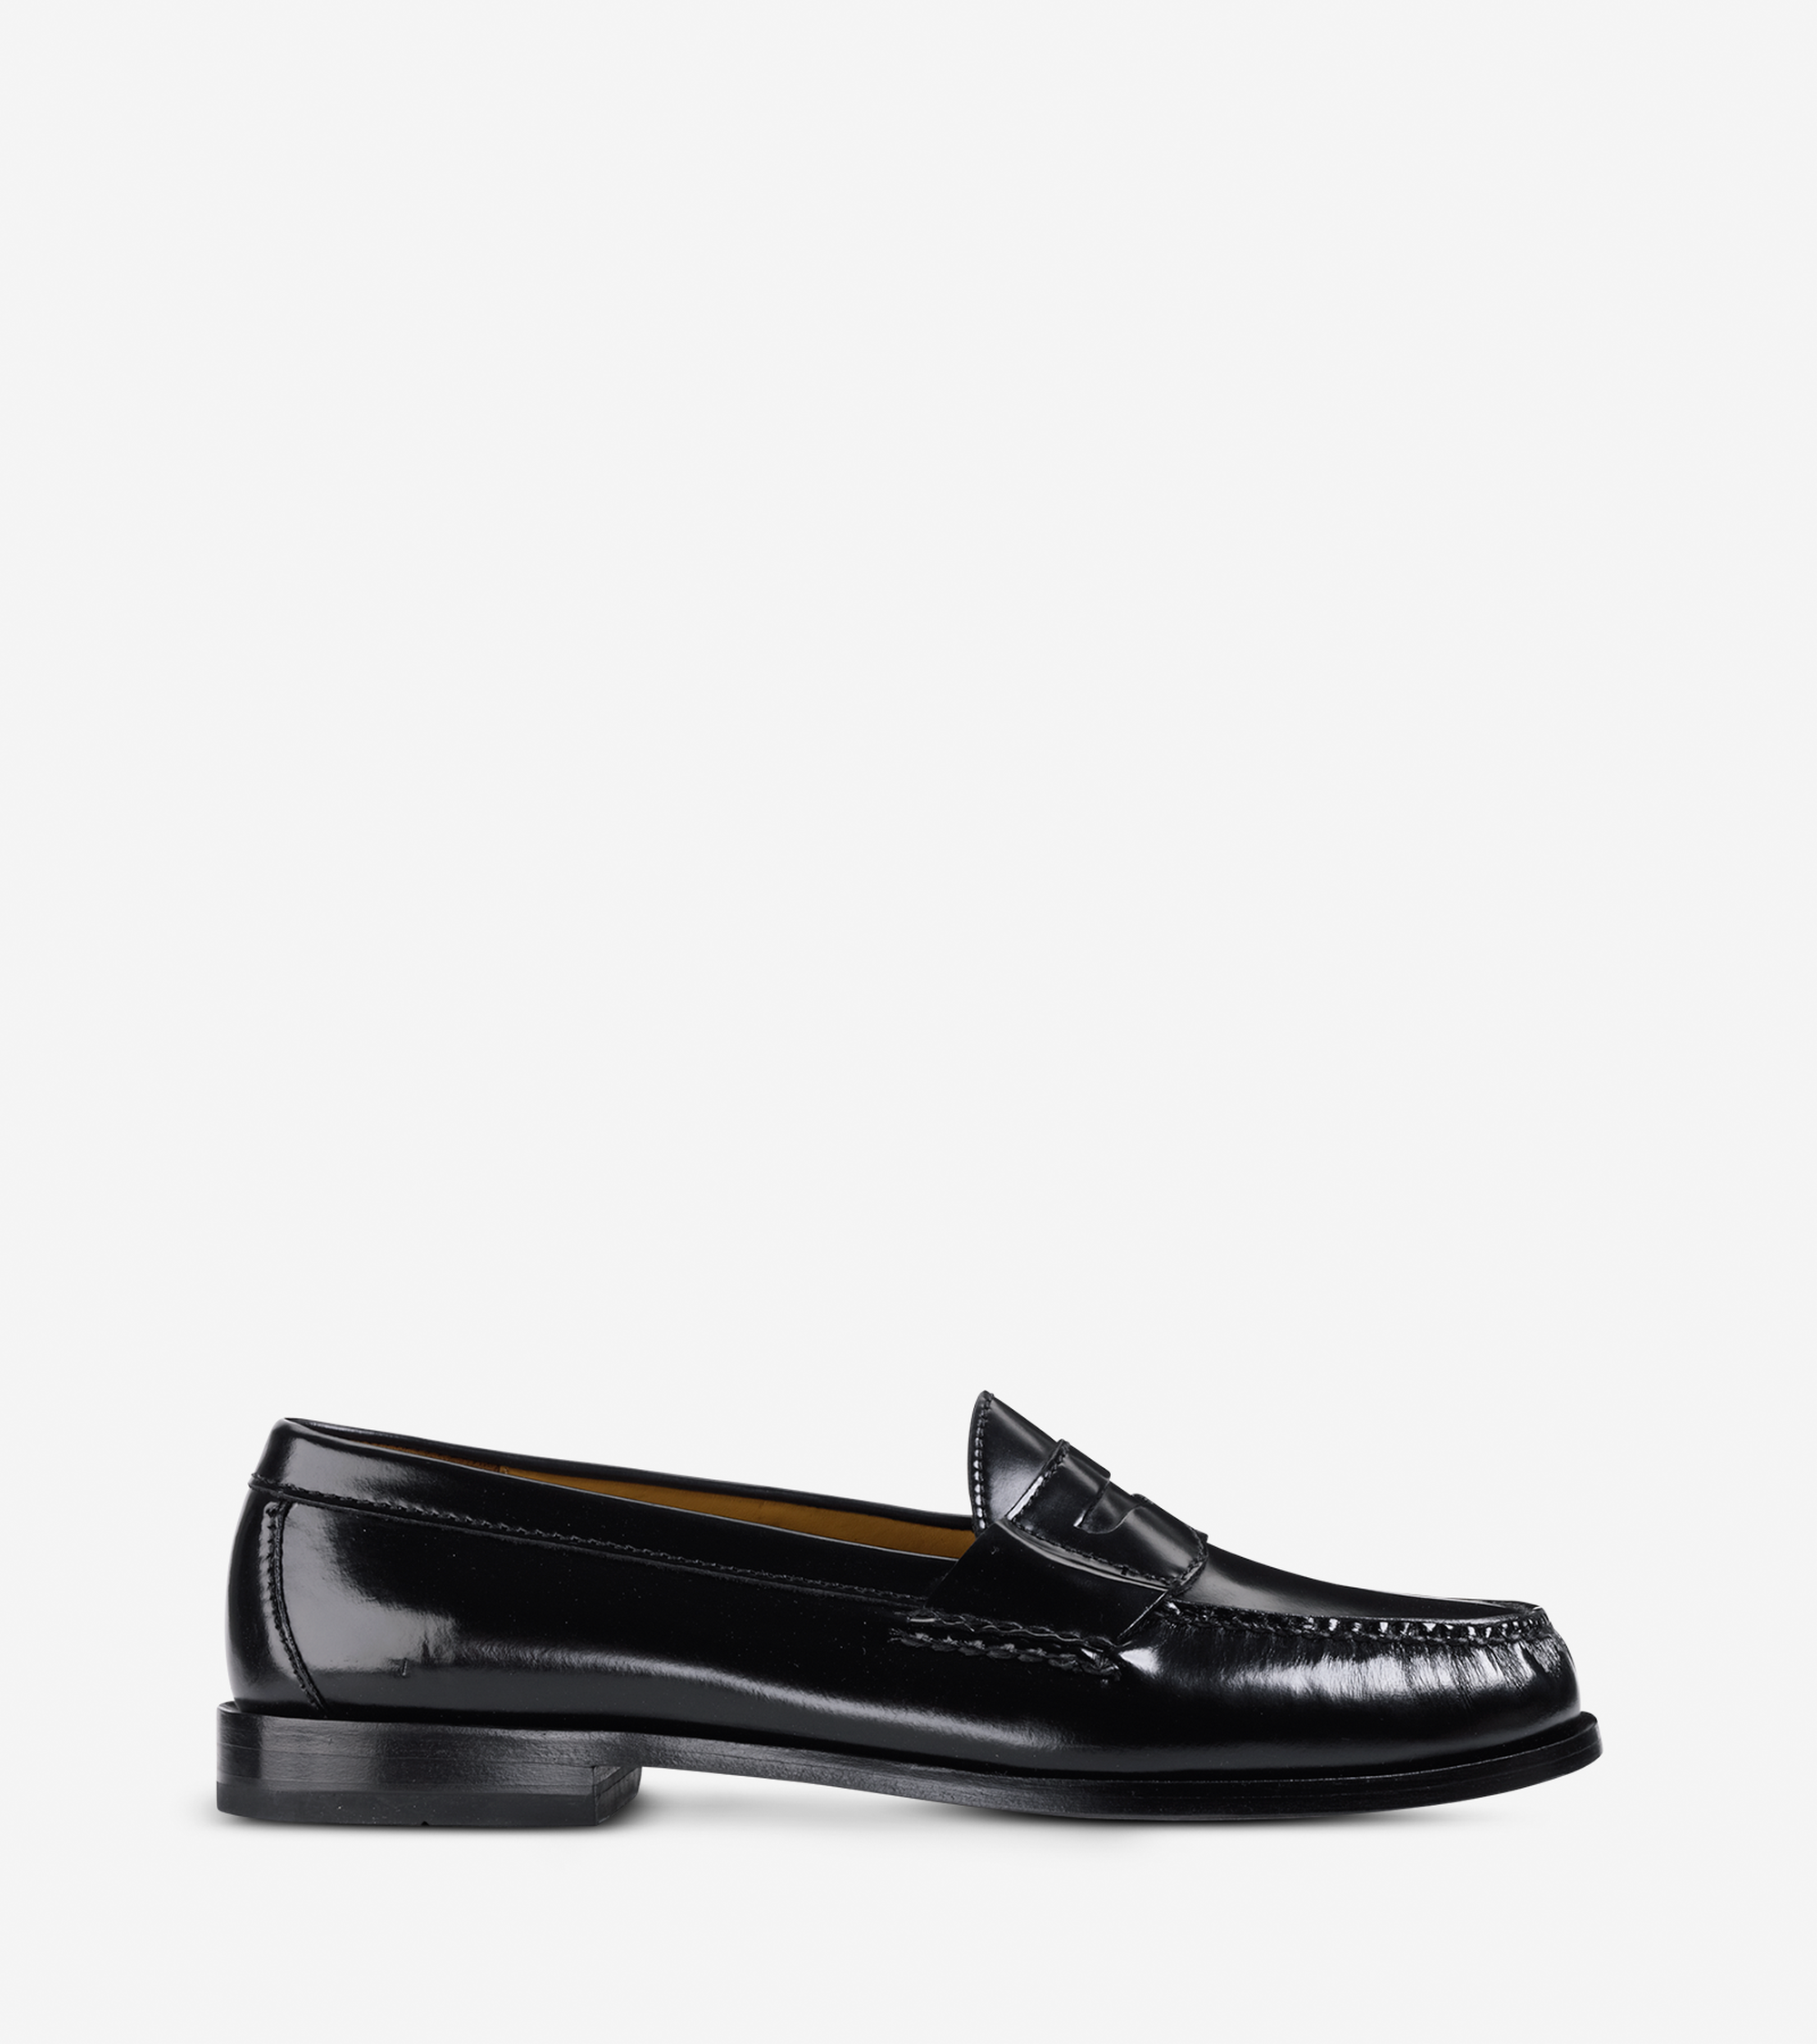 26a57e262e6 Pinch Penny Loafer  Pinch Penny Loafer  Pinch Penny Loafer.  COLEHAAN